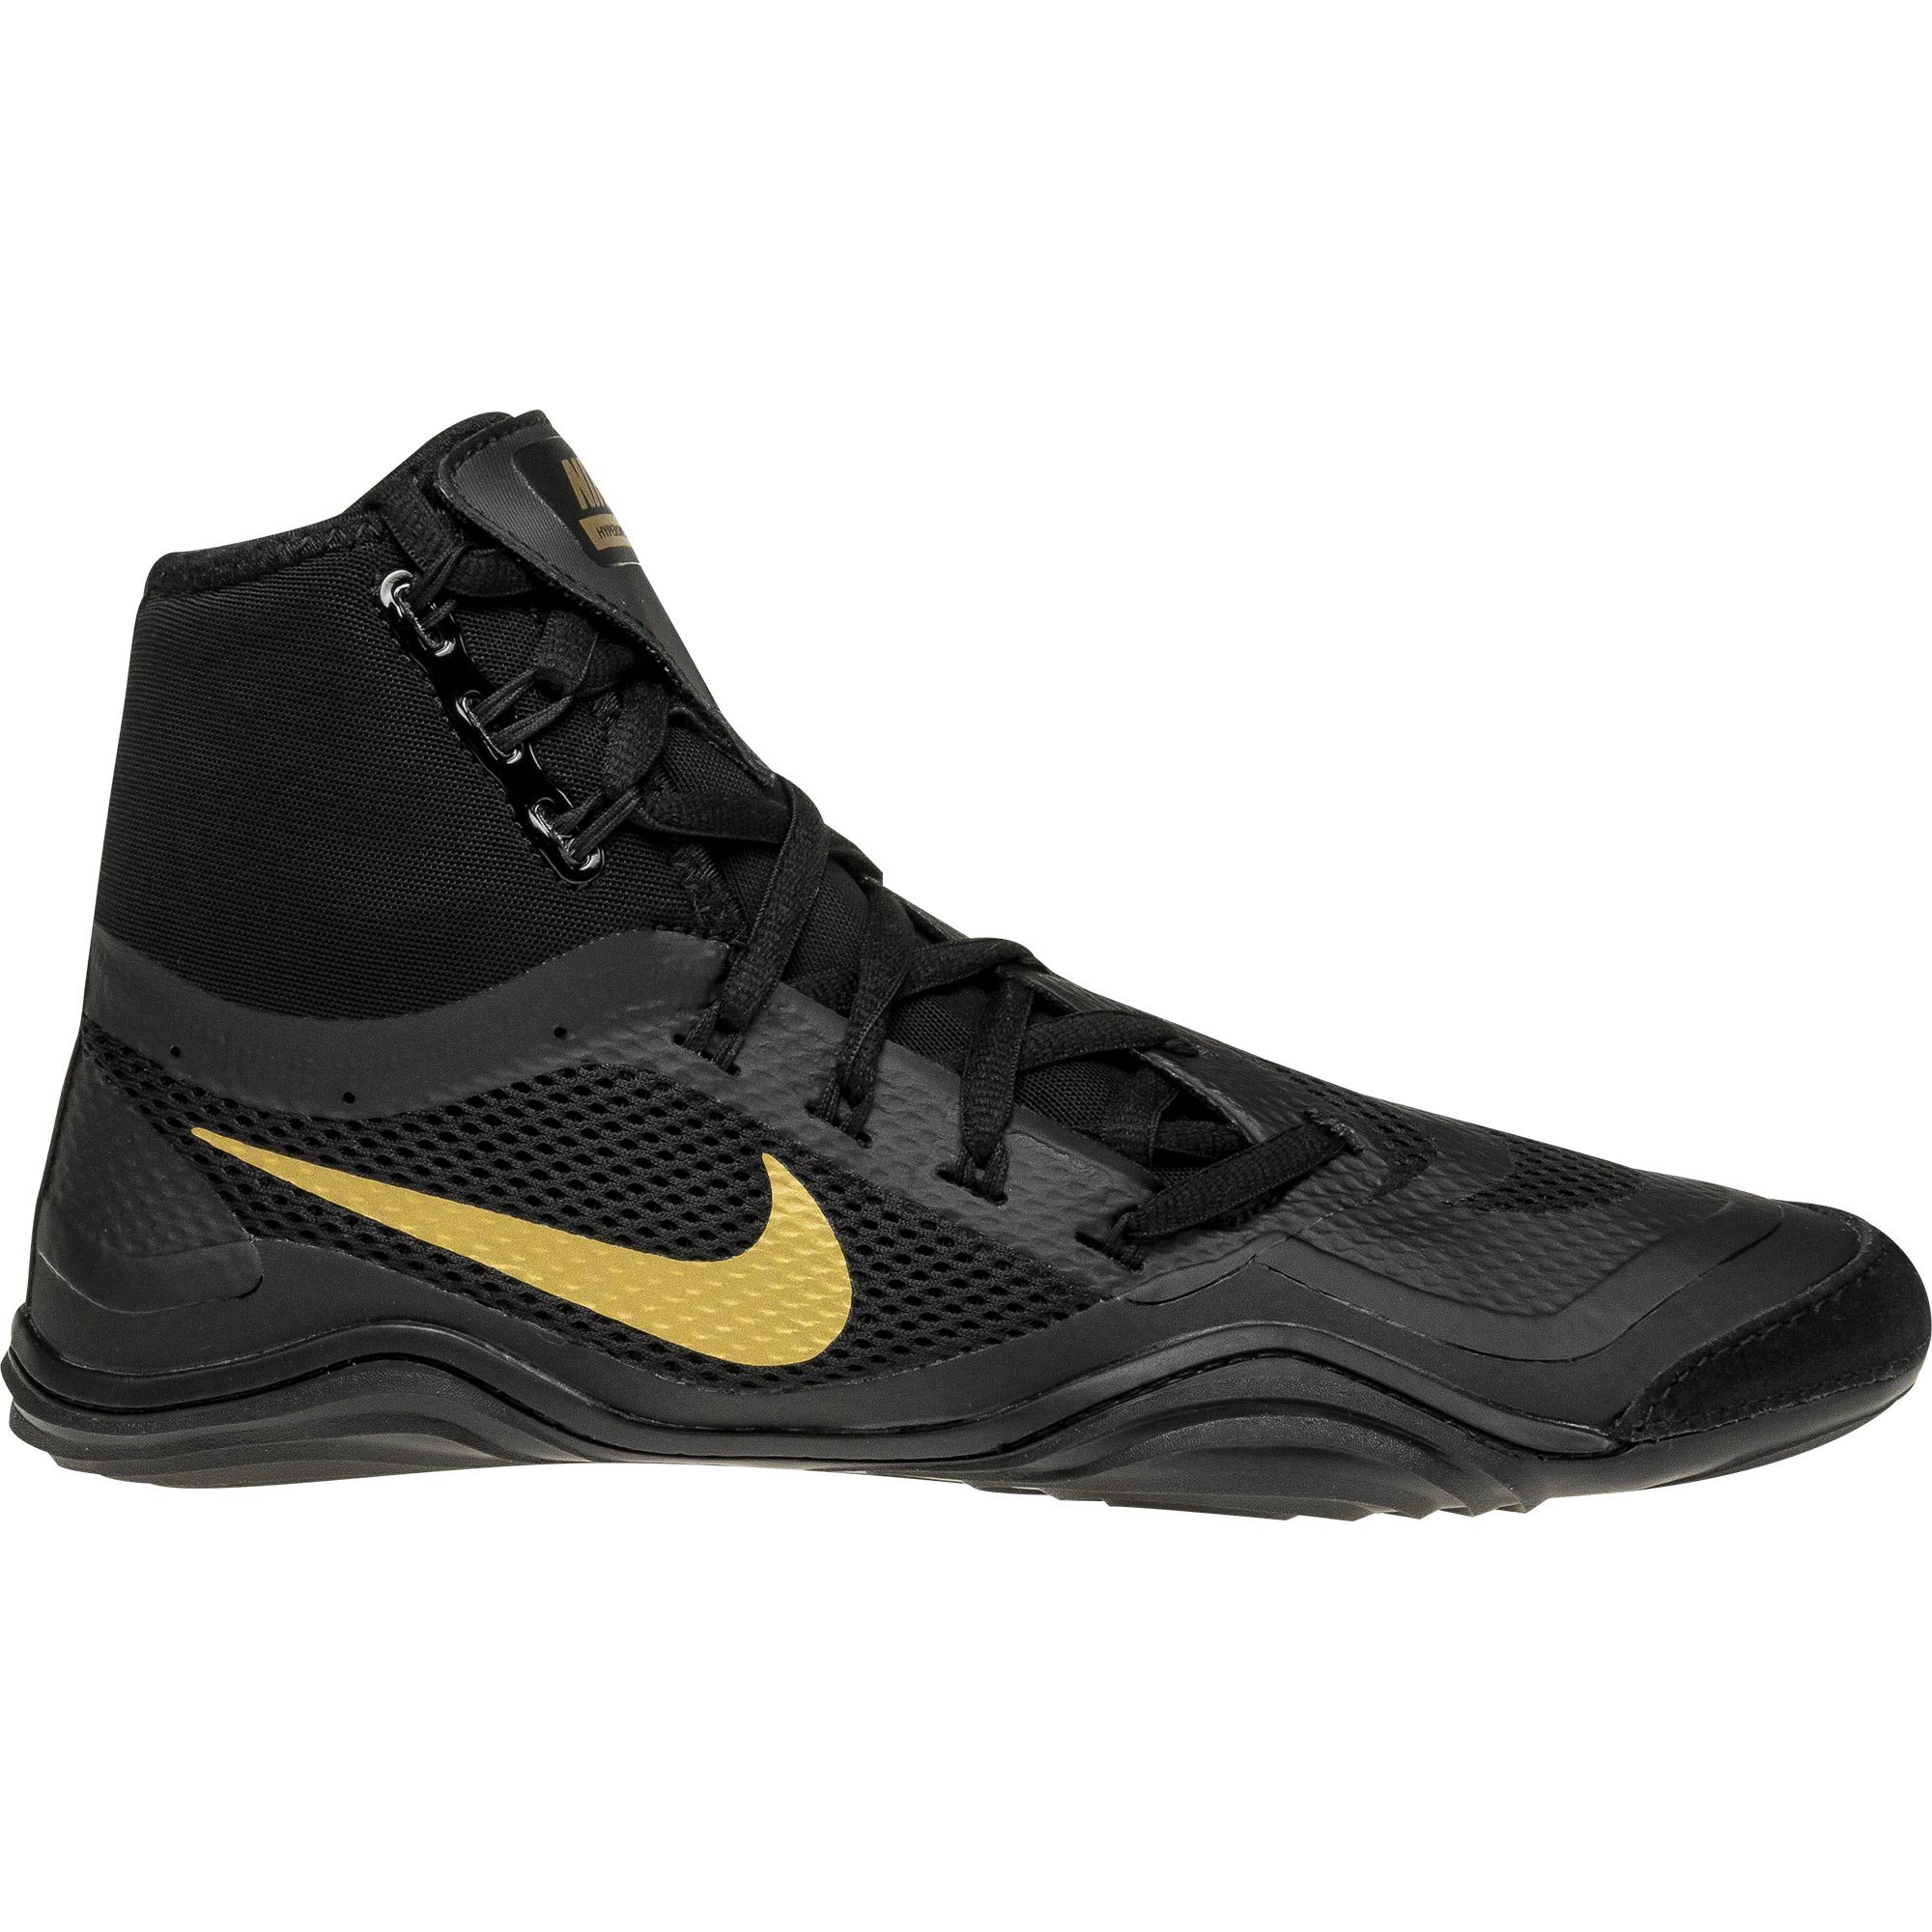 d347411f372f ... Hypersweep Black Gold Black Gold insideNike Hypersweep Black Gold Black  Gold frontNike Hypersweep Black Gold Black Gold backNike Hypersweep Black  Gold ...